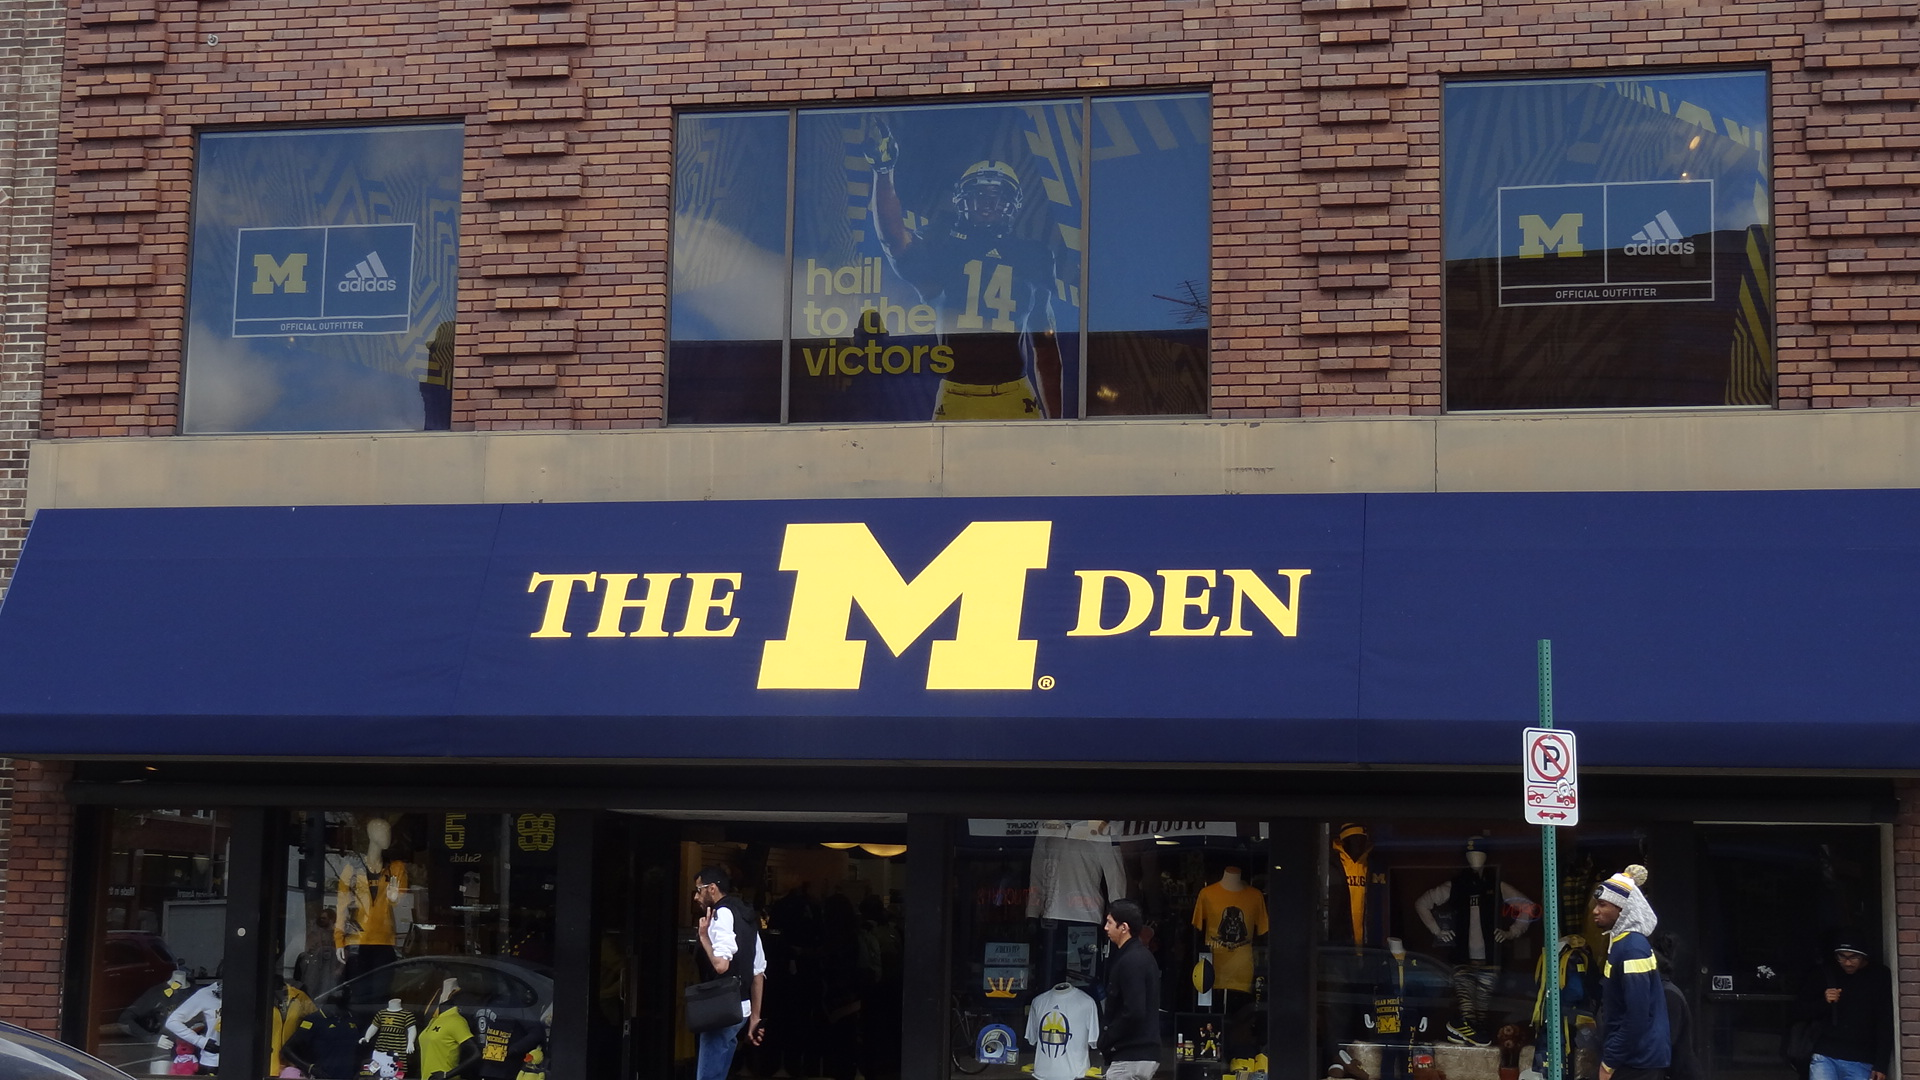 Ann Arbor THE M DEN